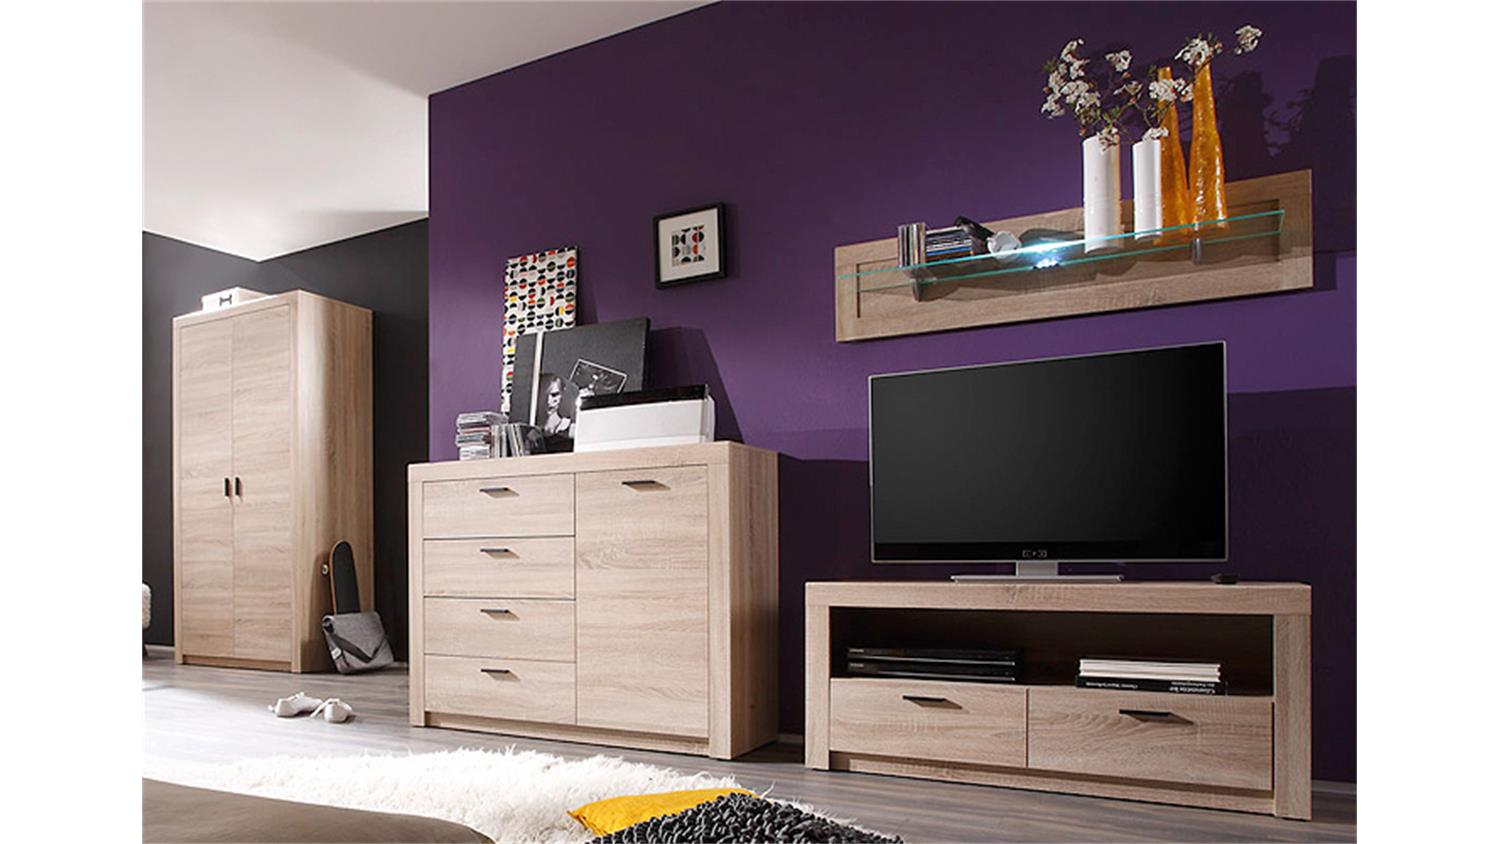 wohnwand 3 nemezis sonoma eiche inkl beleuchtung. Black Bedroom Furniture Sets. Home Design Ideas